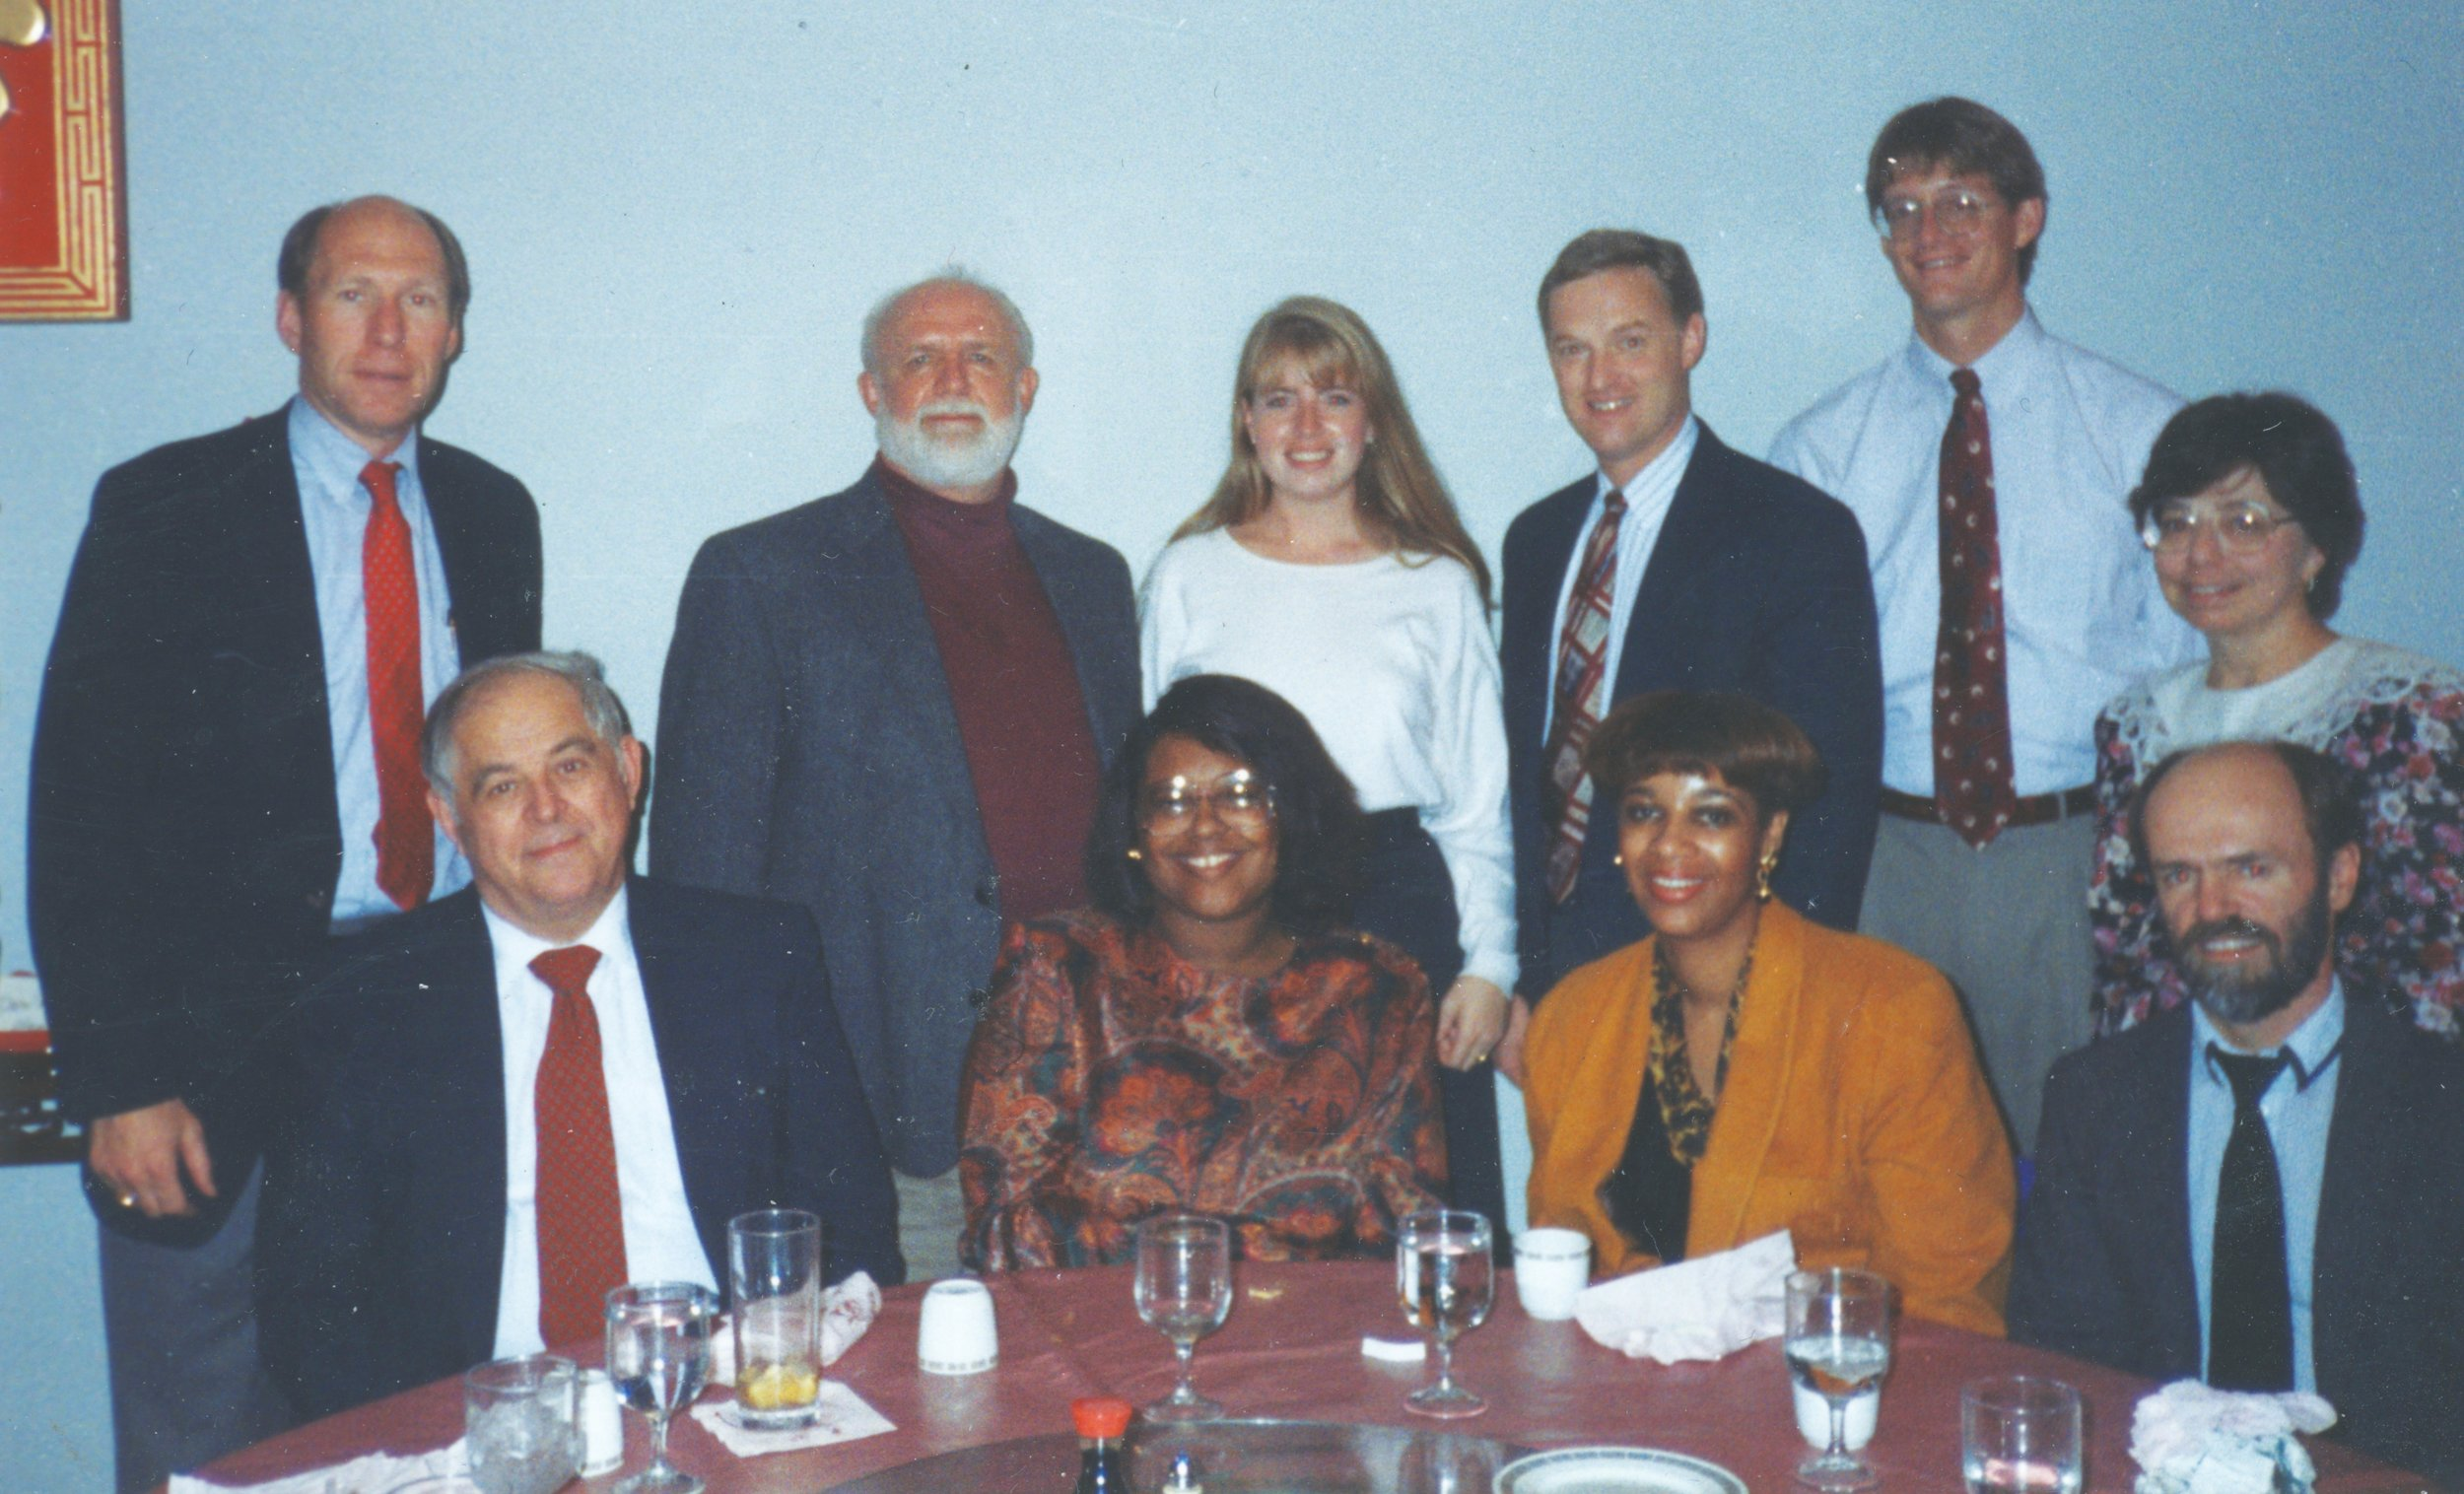 Carolyn with colleagues at the Pentagon, including mentor John Beasley to her left.